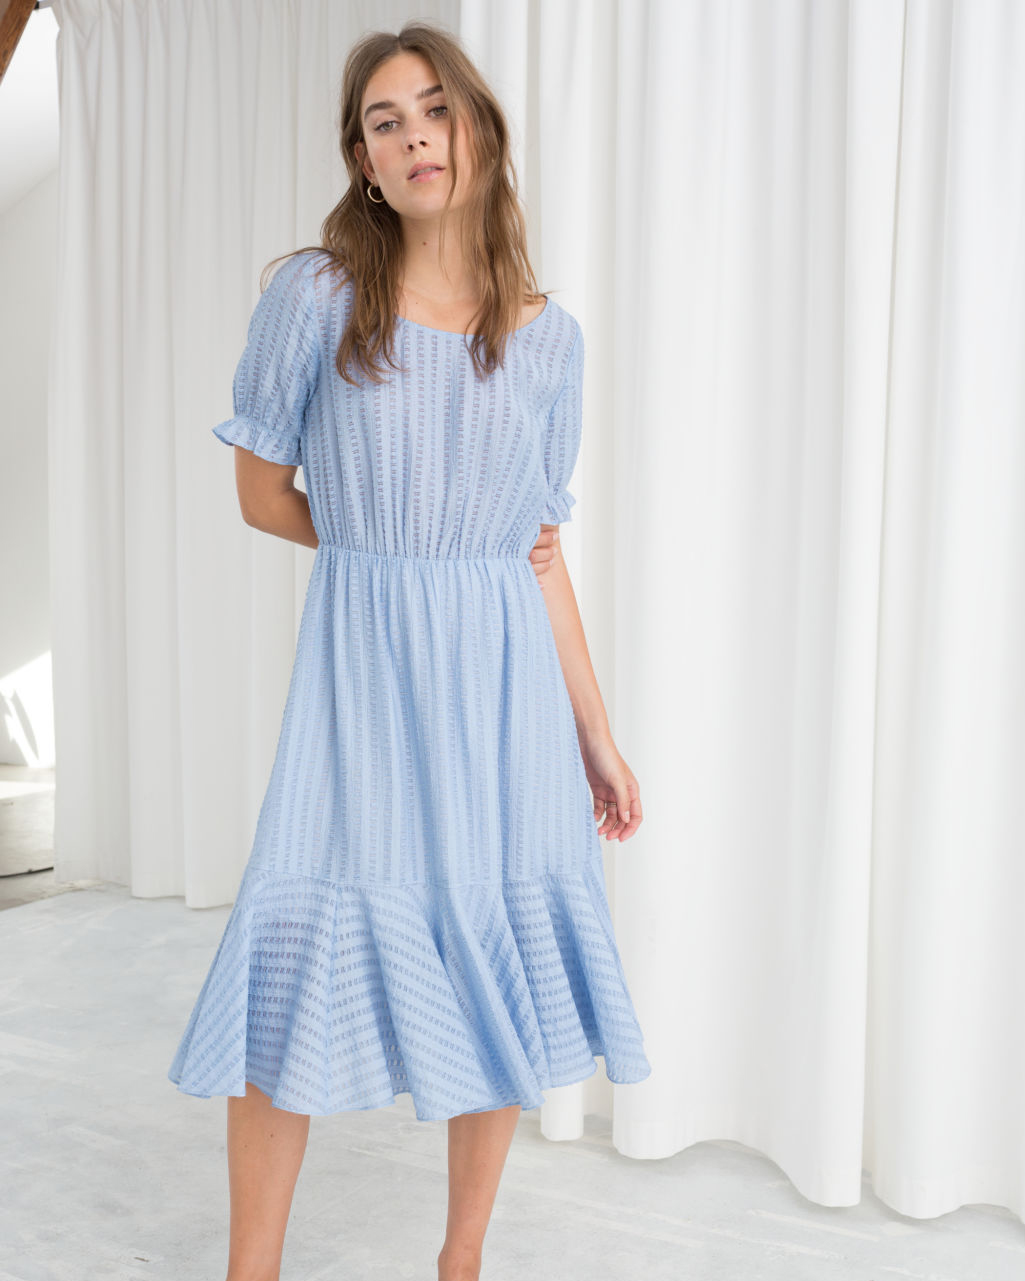 baby blue striped midi dress with puffed sleeves